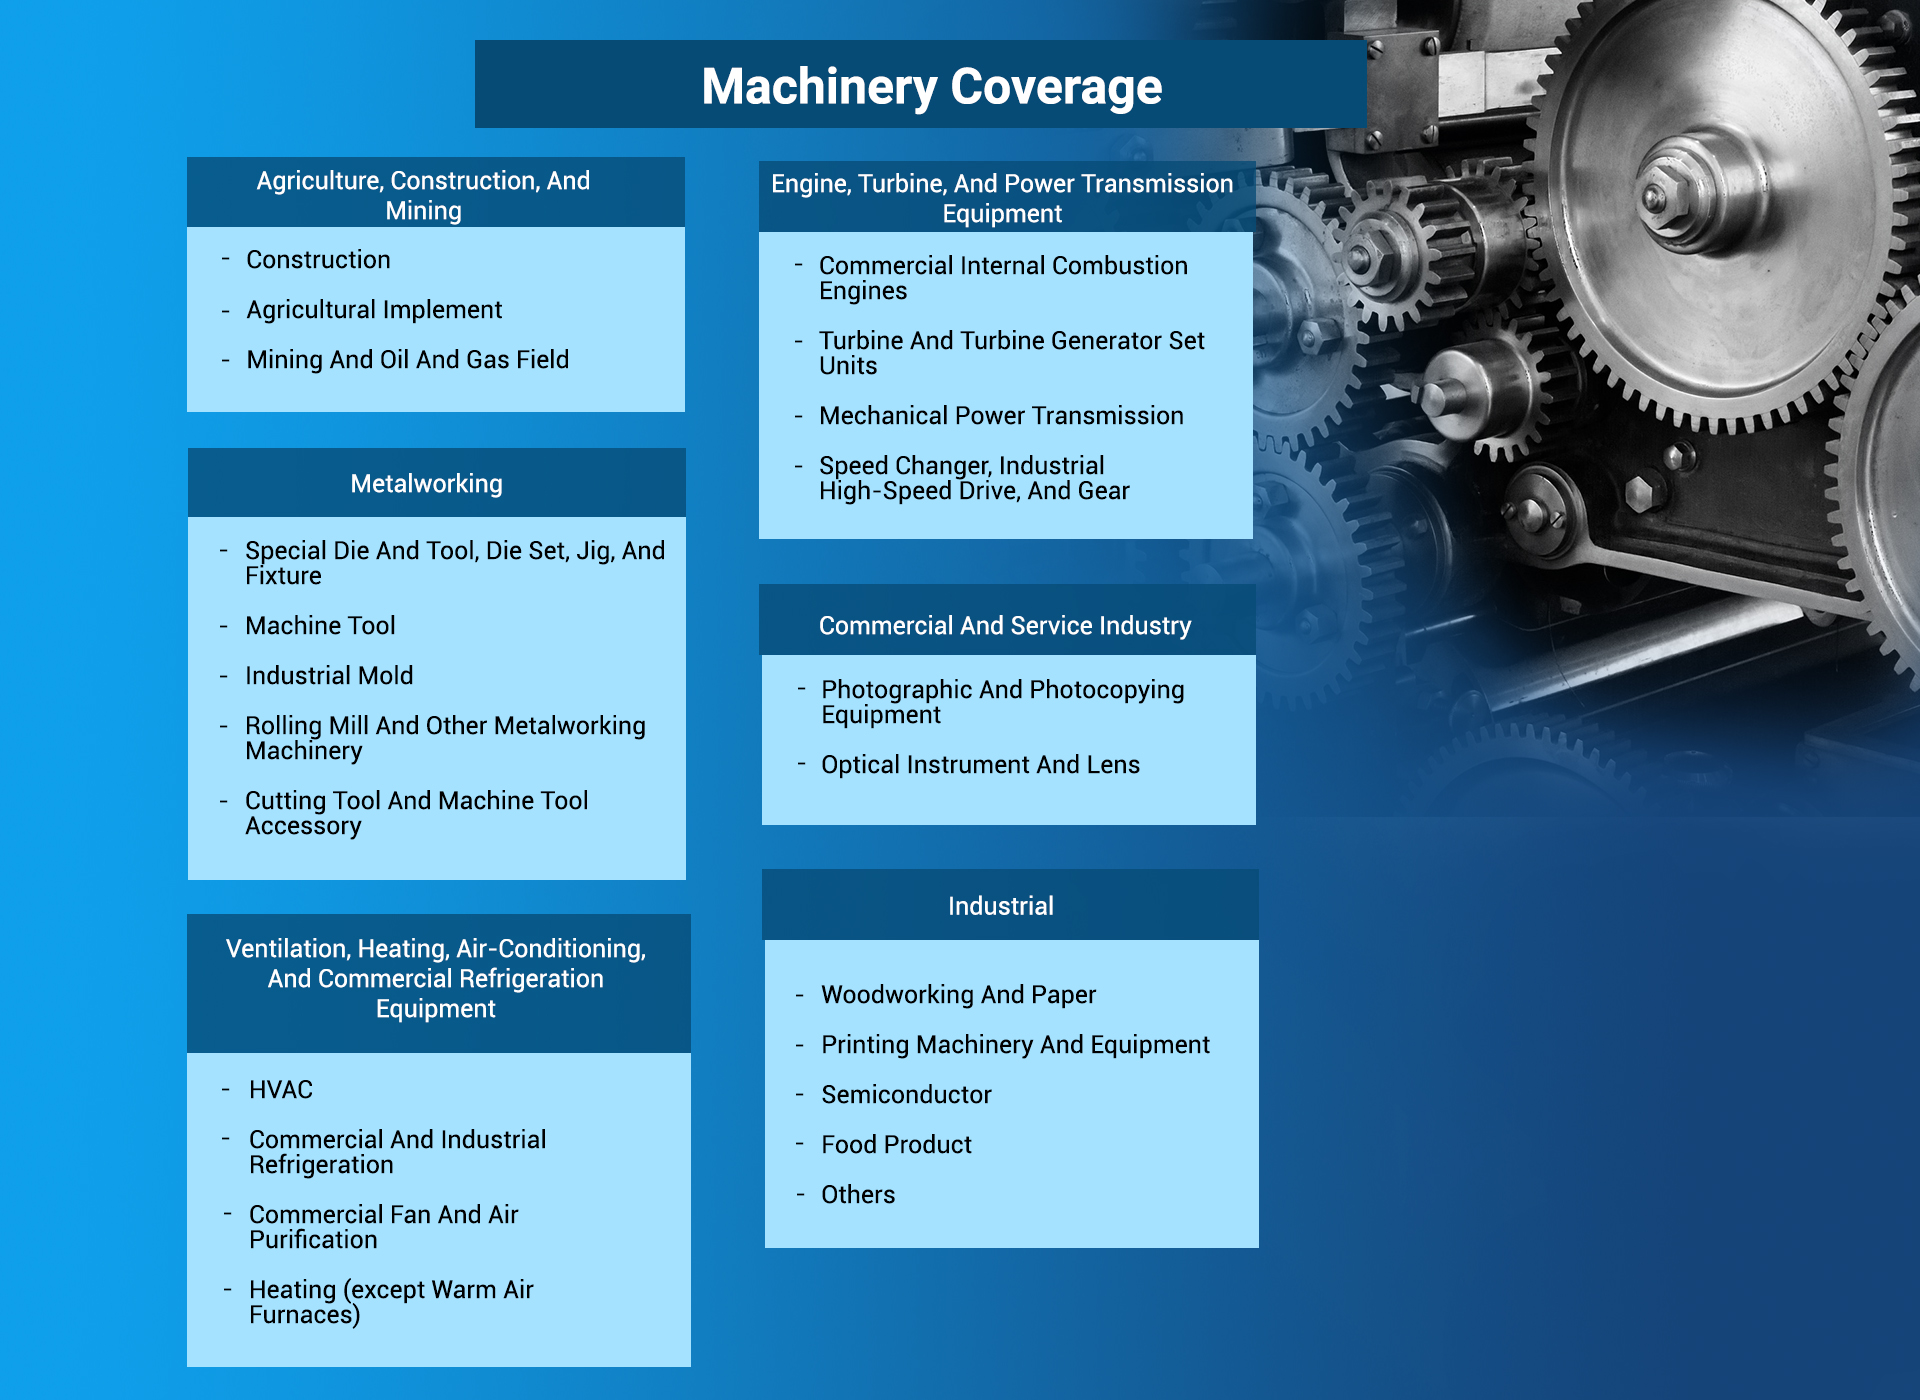 Machinery Coverage